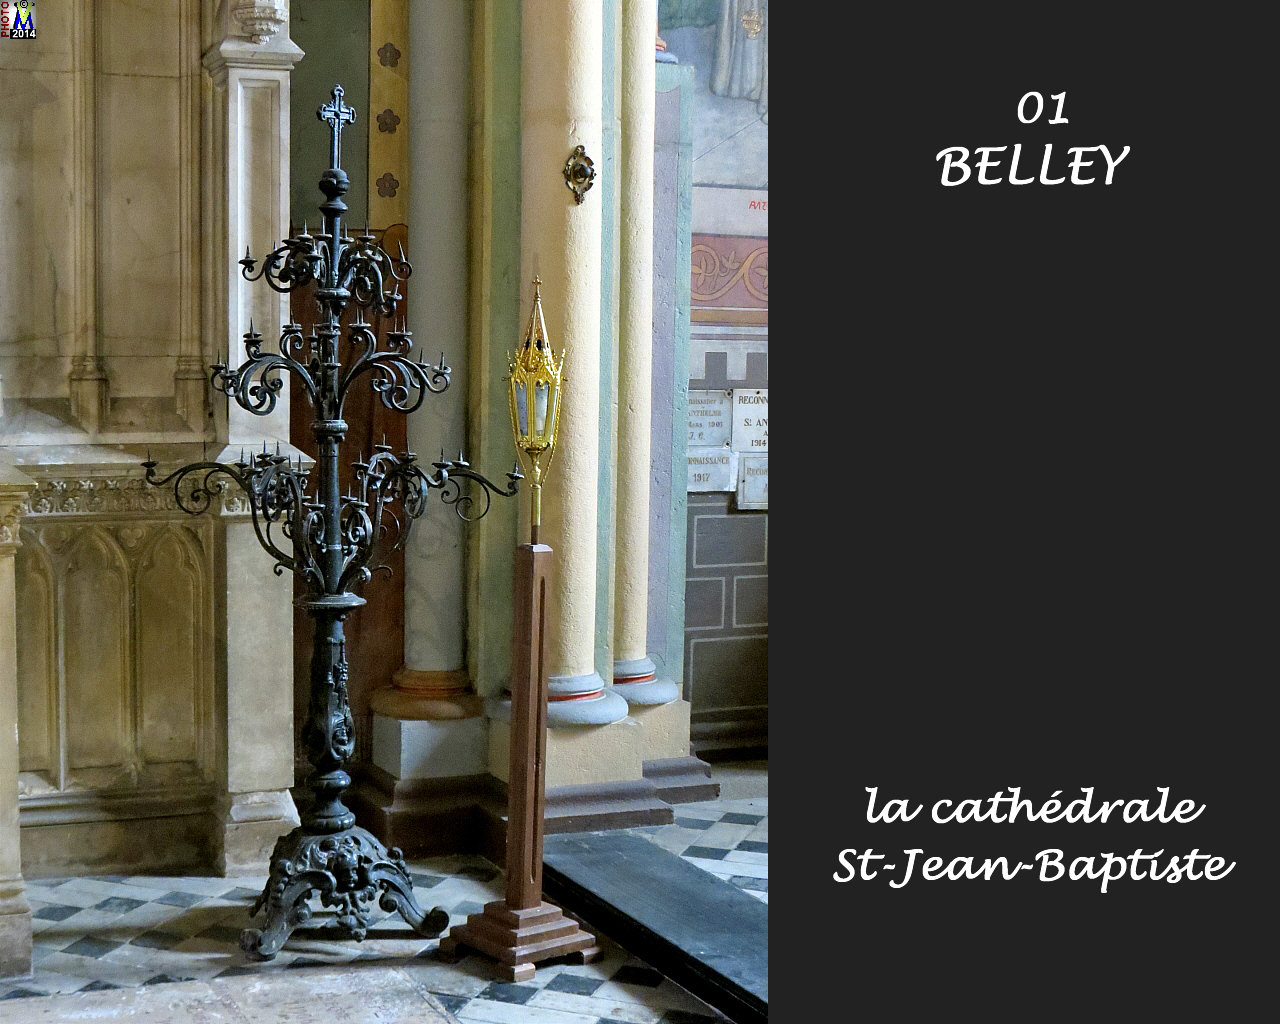 01BELLEY_cathedrale_268.jpg